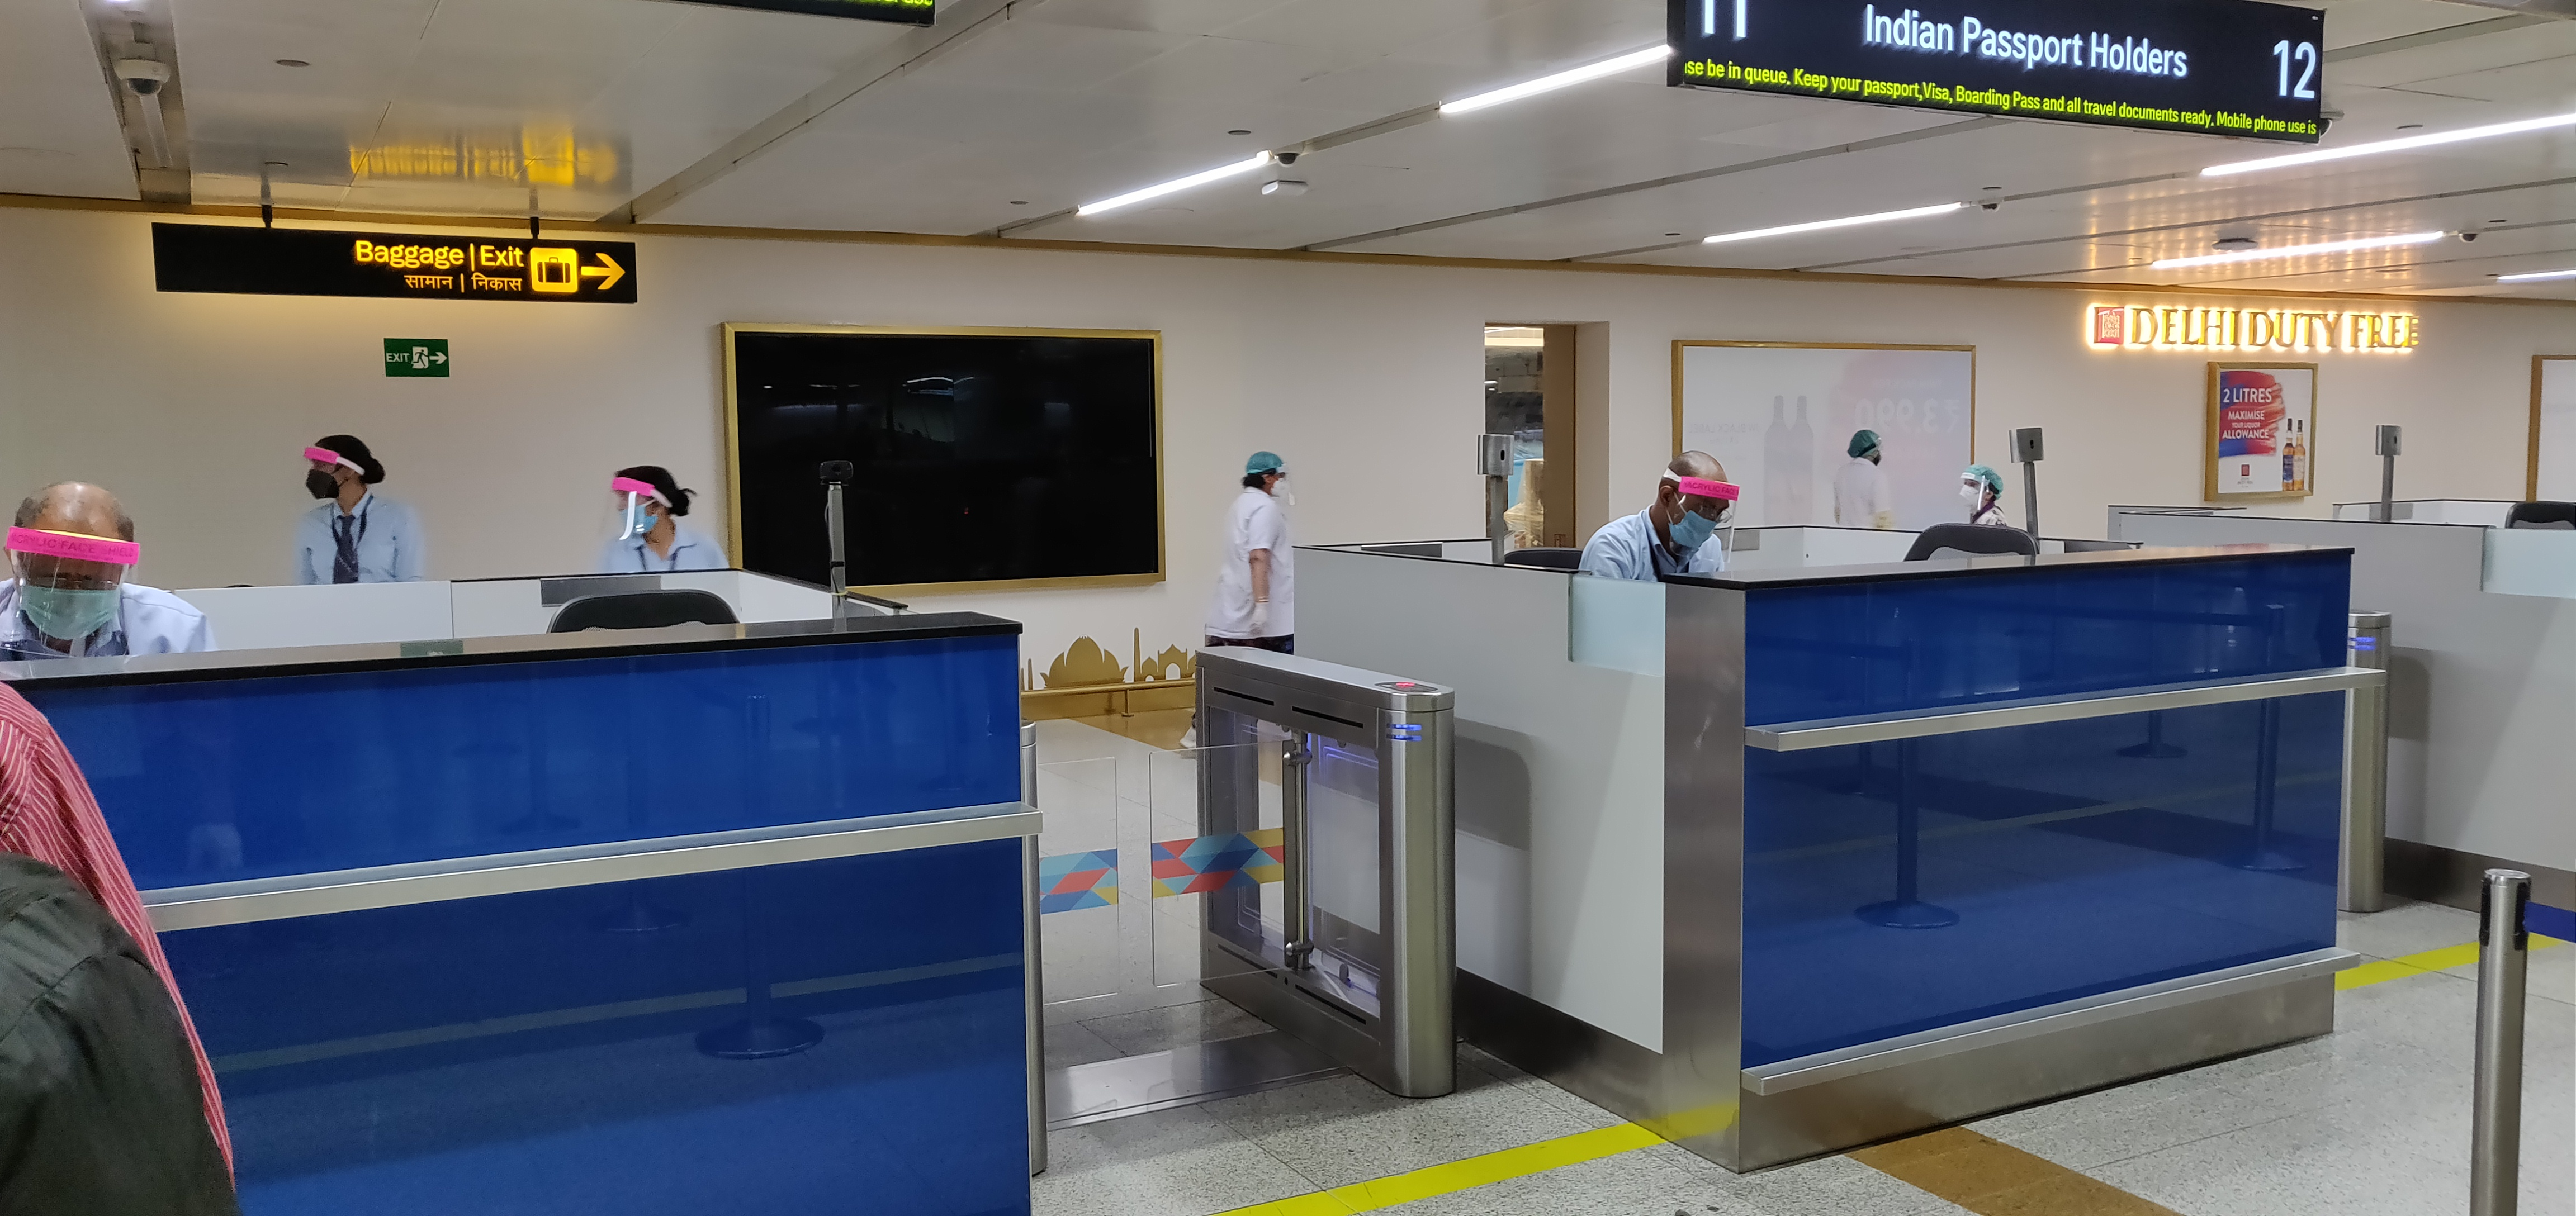 Th immigration counter at Indira Gandhi International Airport, New Delhi, where the evacuation flights are arriving. Photo: Connected to India